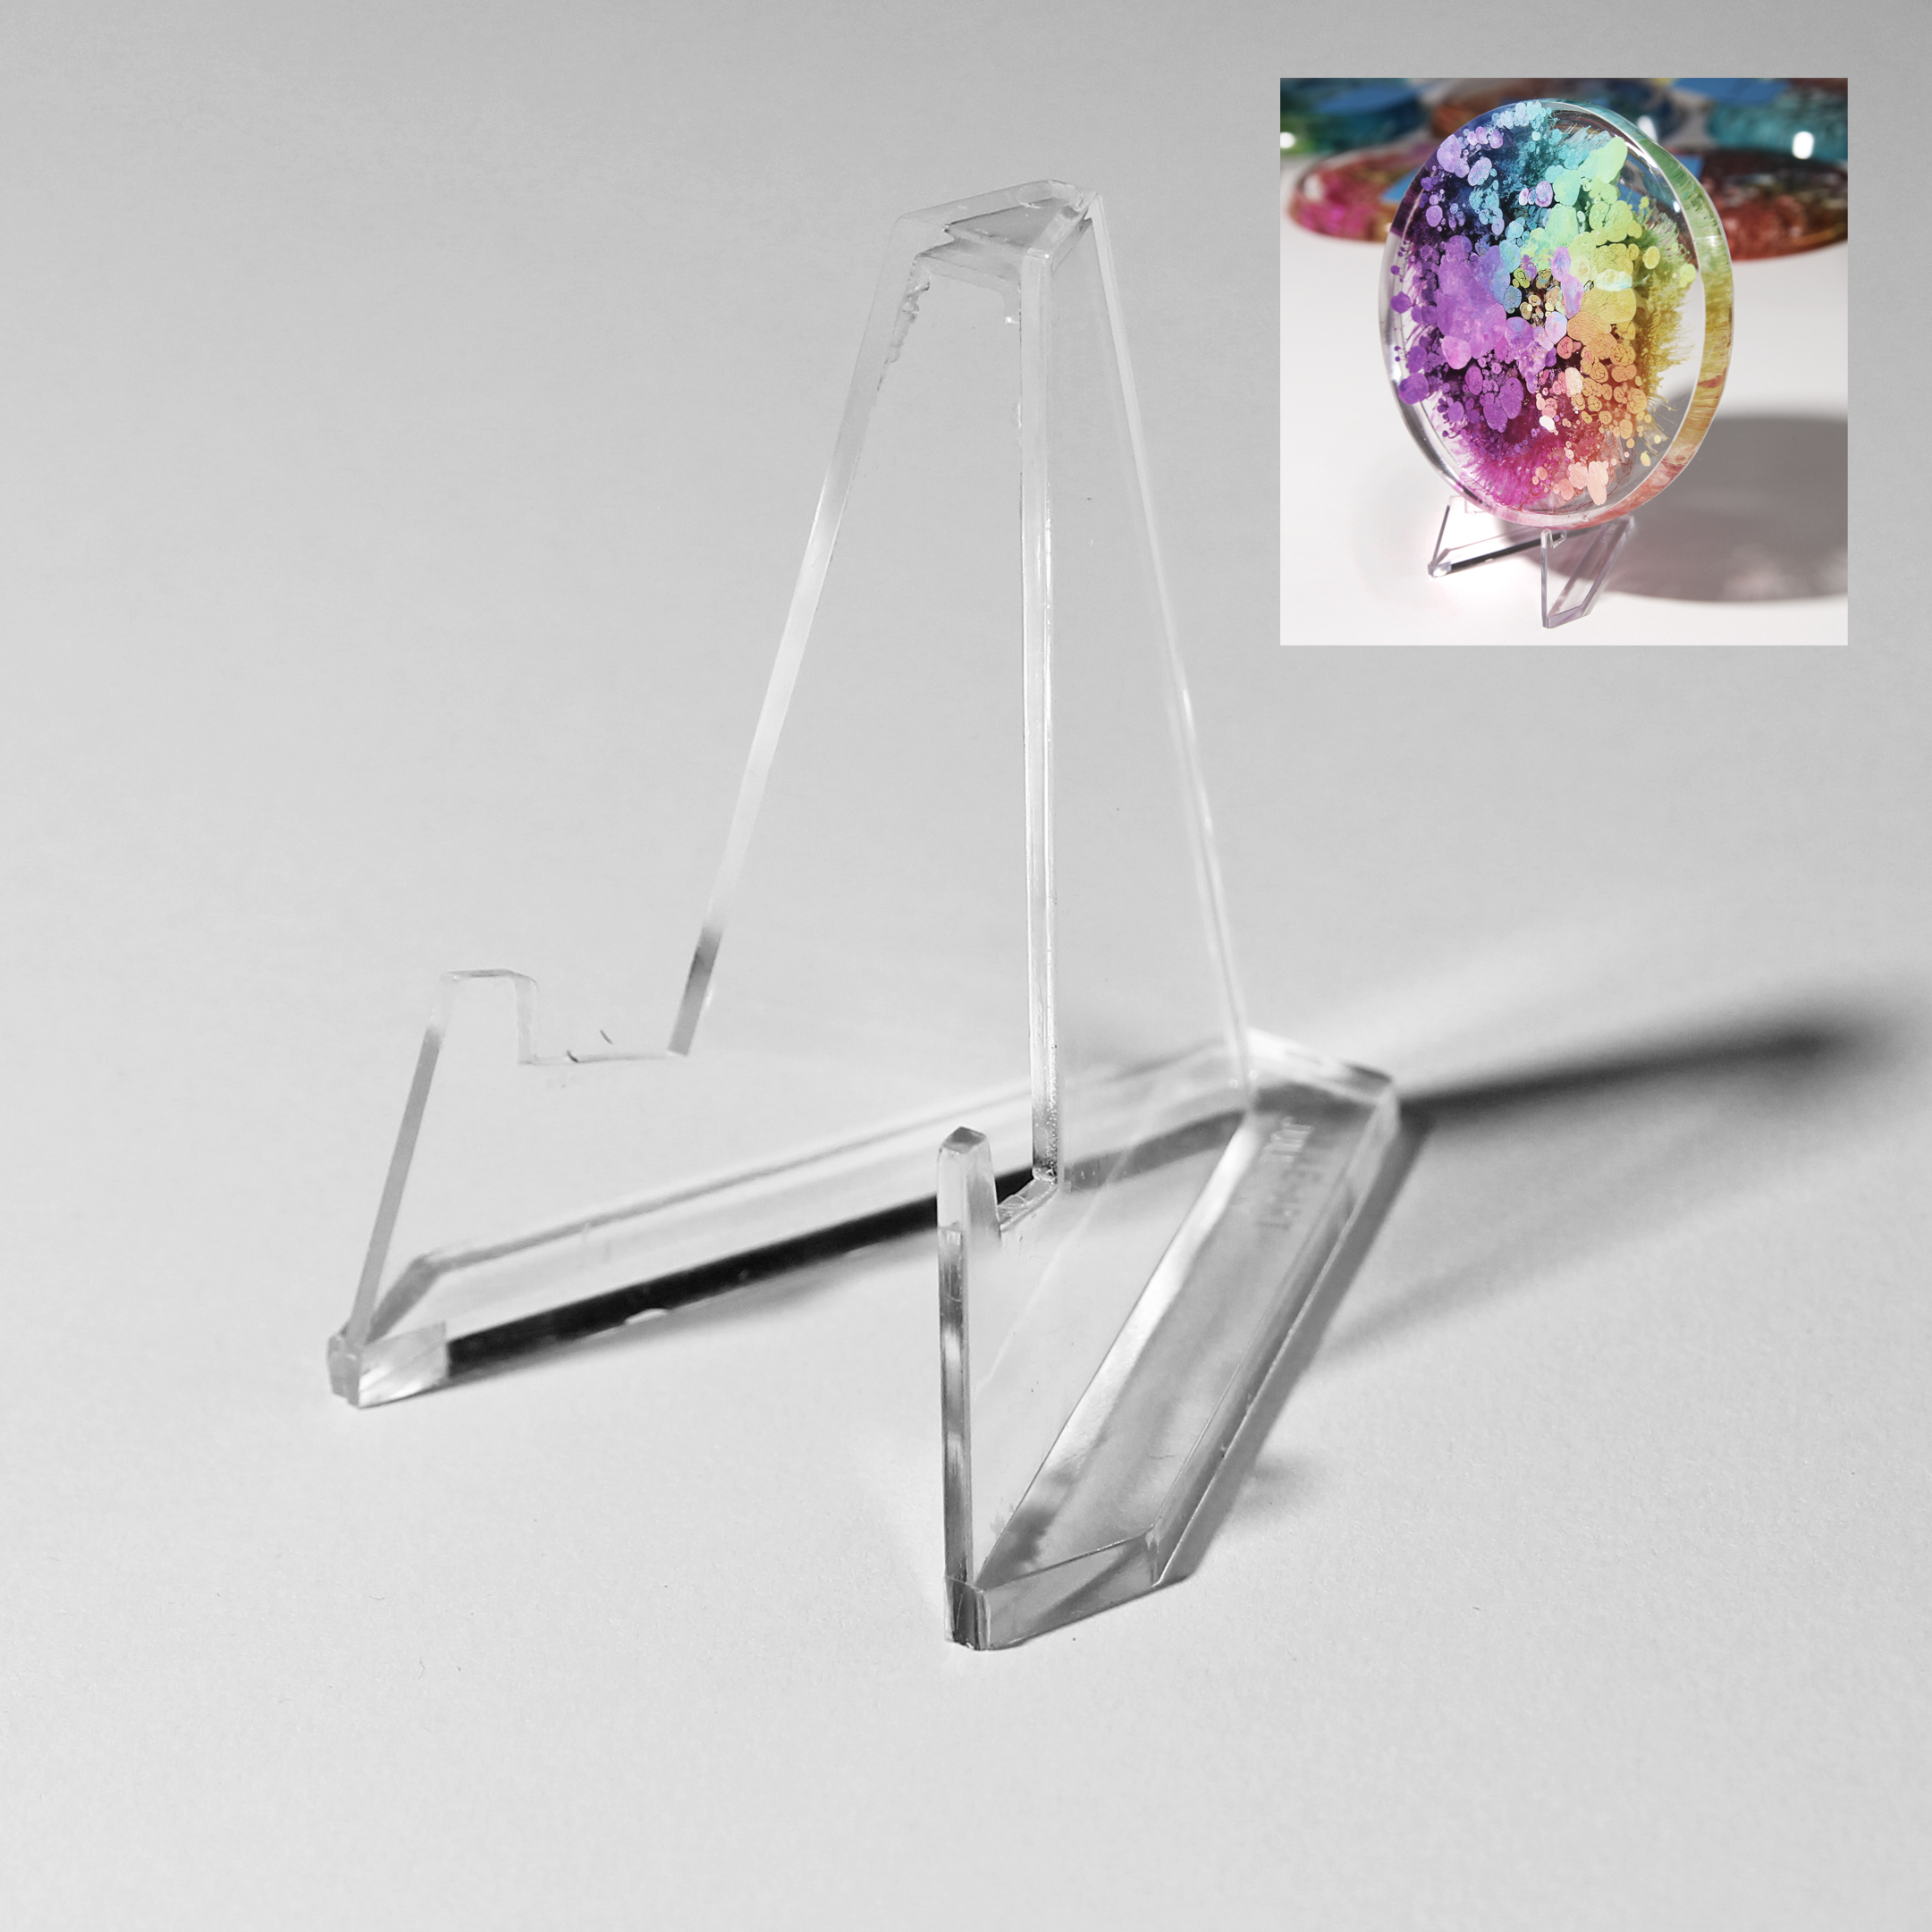 Lucite stand image.jpg